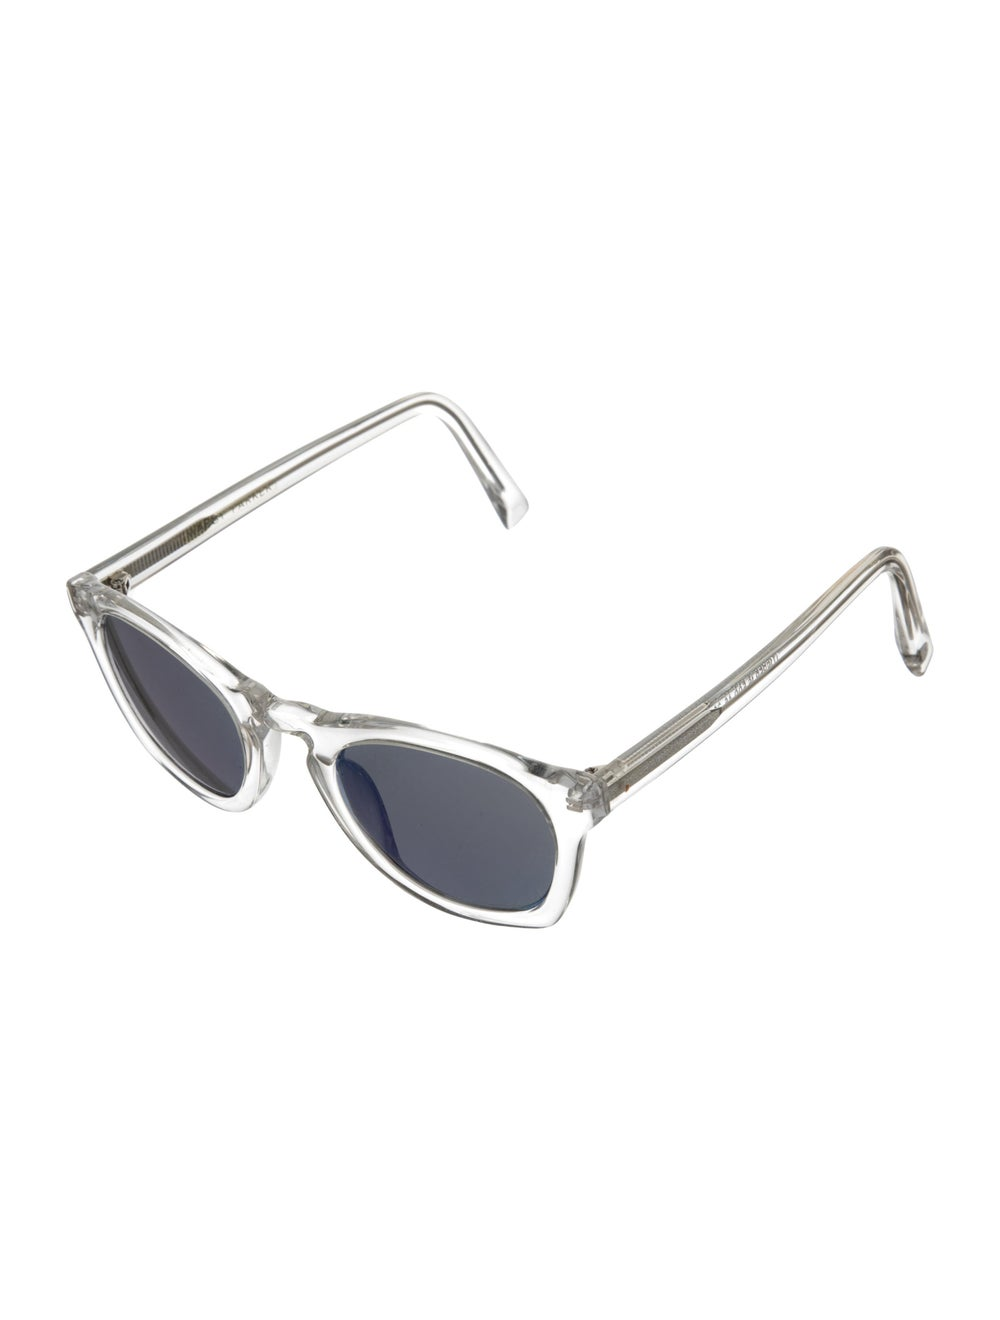 Warby Parker Topper Reflective Sunglasses Clear - image 2